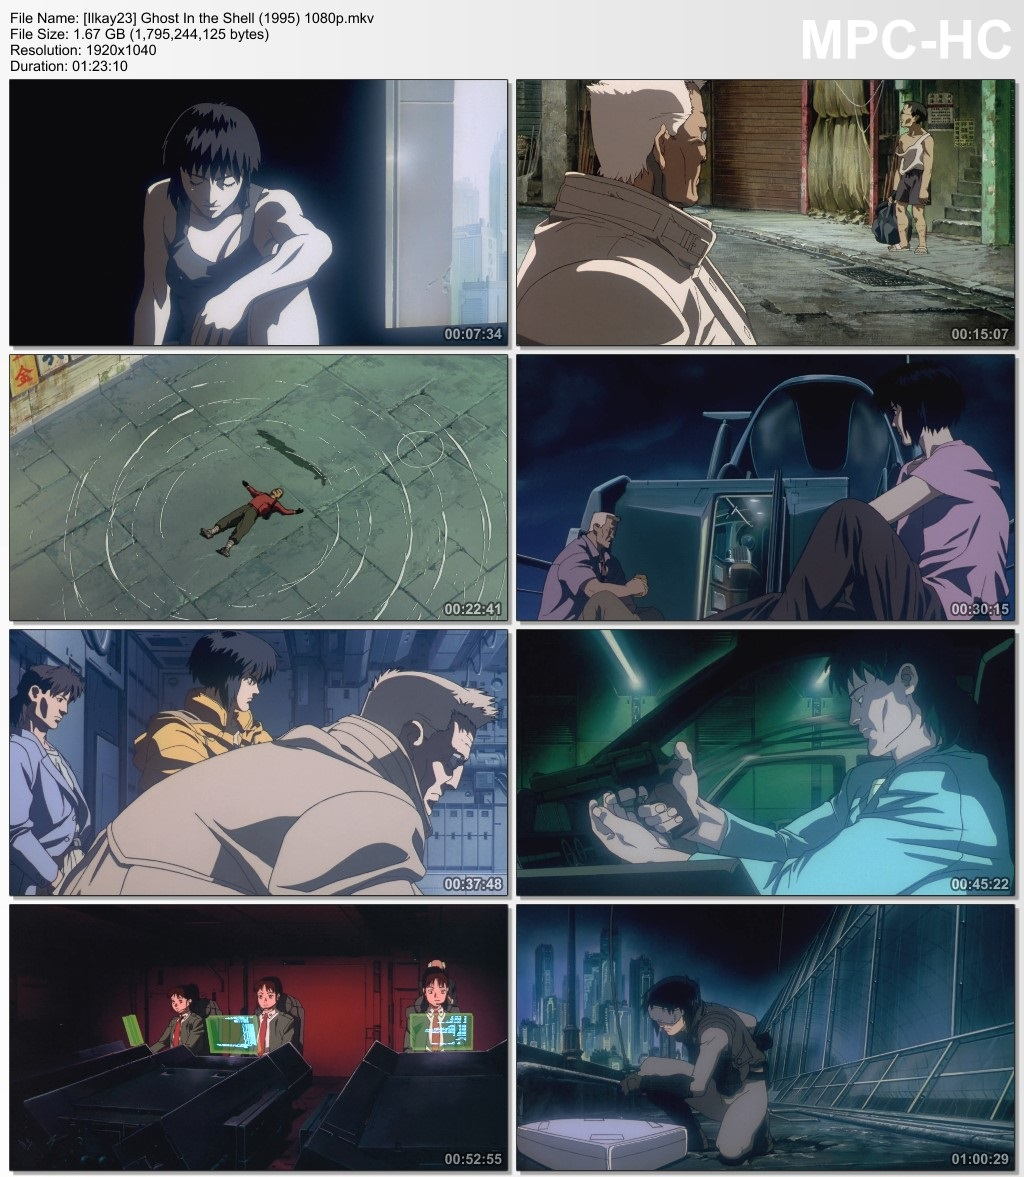 %255BIlkay23%255D%2BGhost%2BIn%2Bthe%2BShell%2B%25282000%2529 - Ghost In The Shell (1995) | BDrip | 1080p | Sub Esp | MEGA | UPTOBOX |